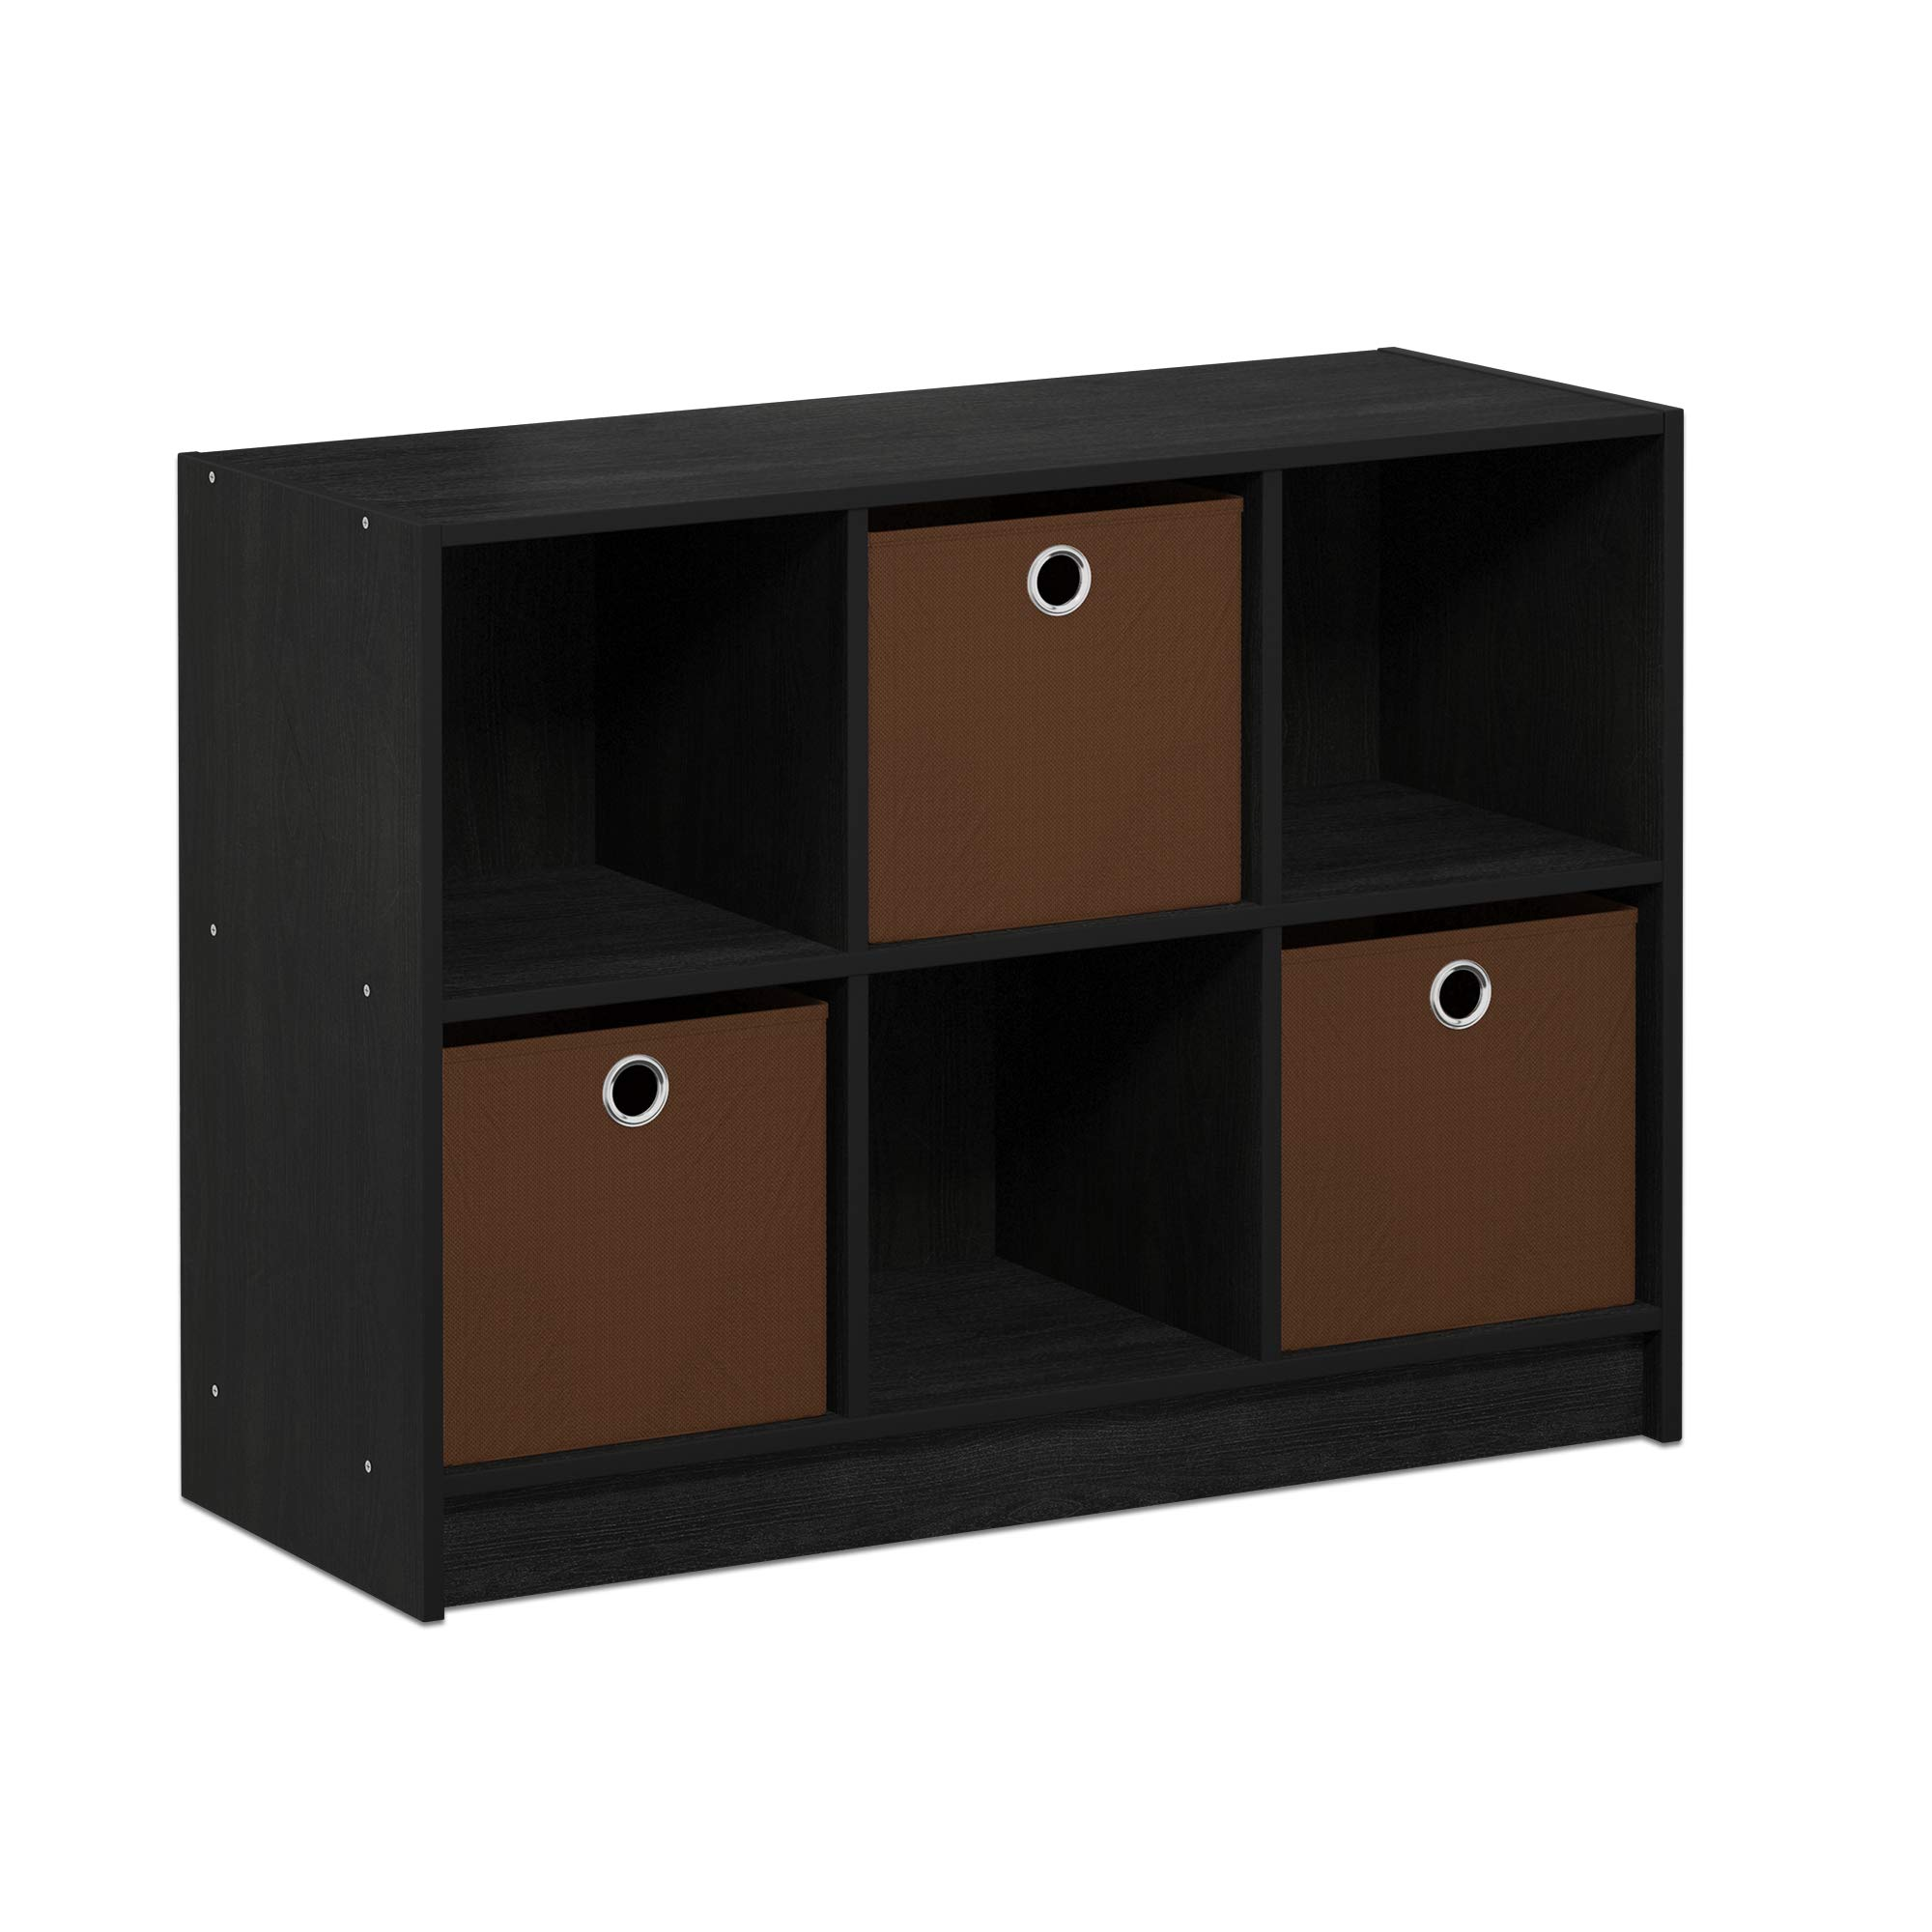 FURINNO Basic 3x2 Bookcase Storage, Americano/Brown